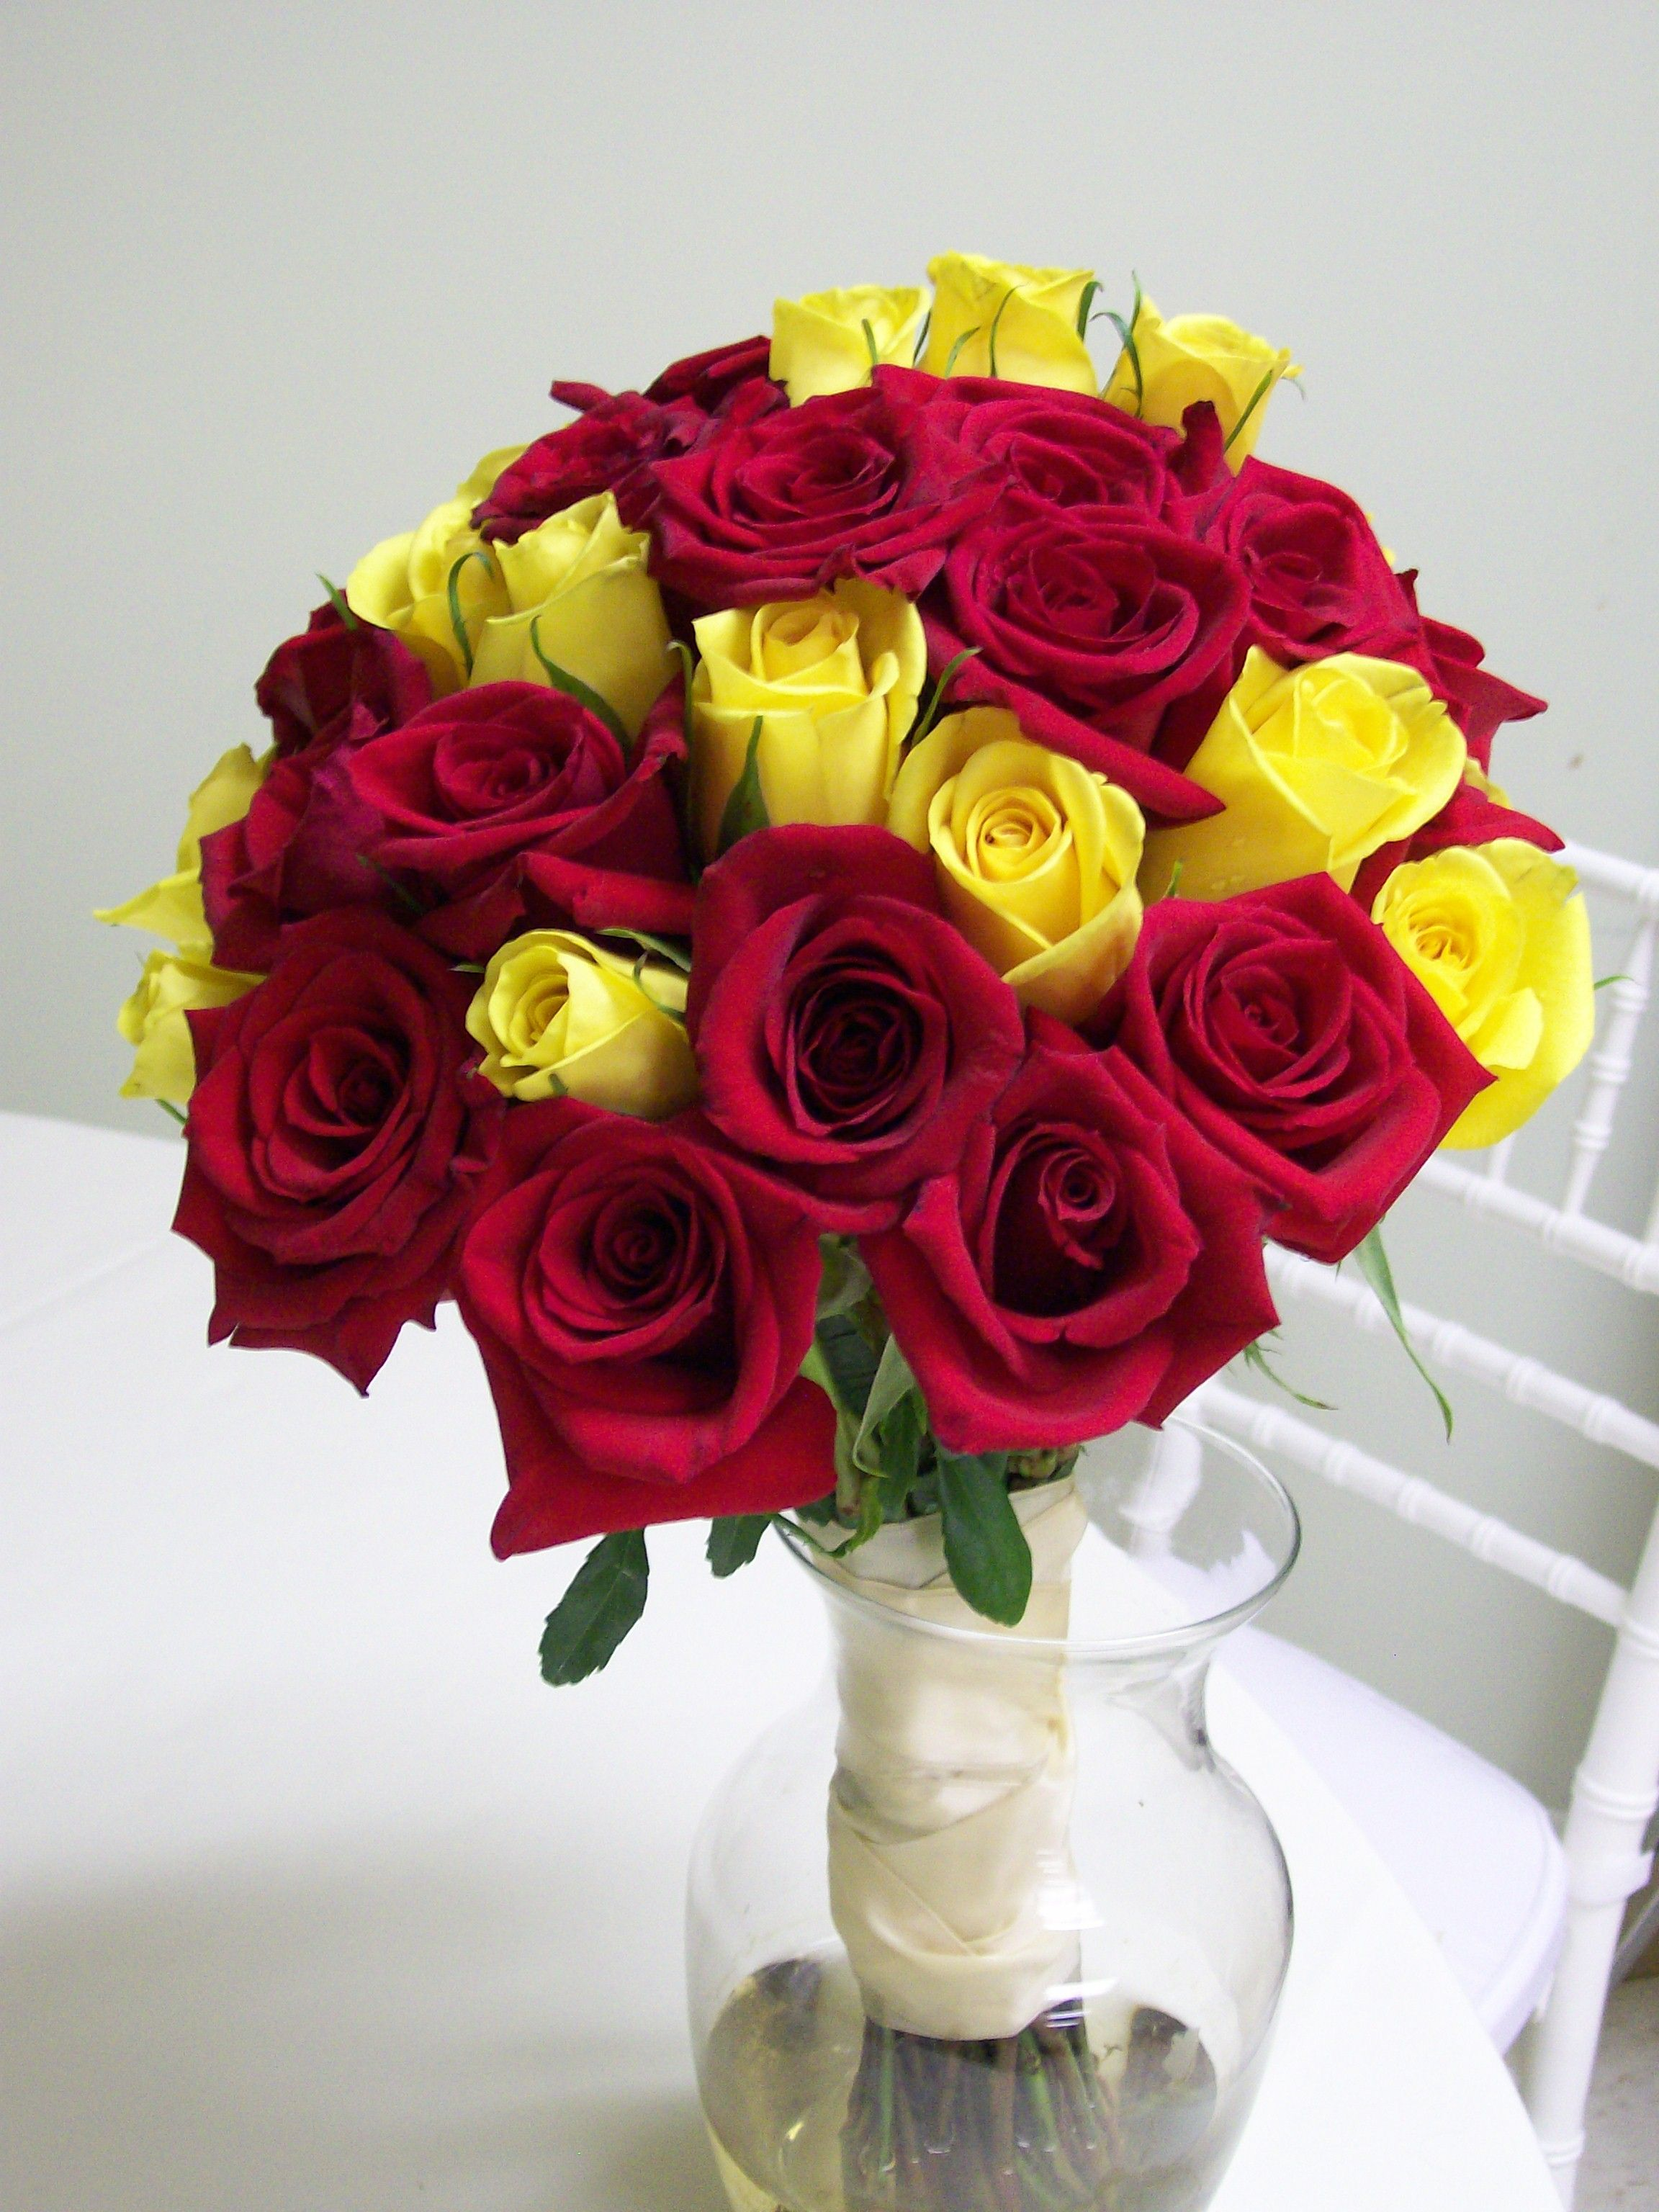 Red and yellow wedding flowers carrie anne powell red for Images of bouquets of roses